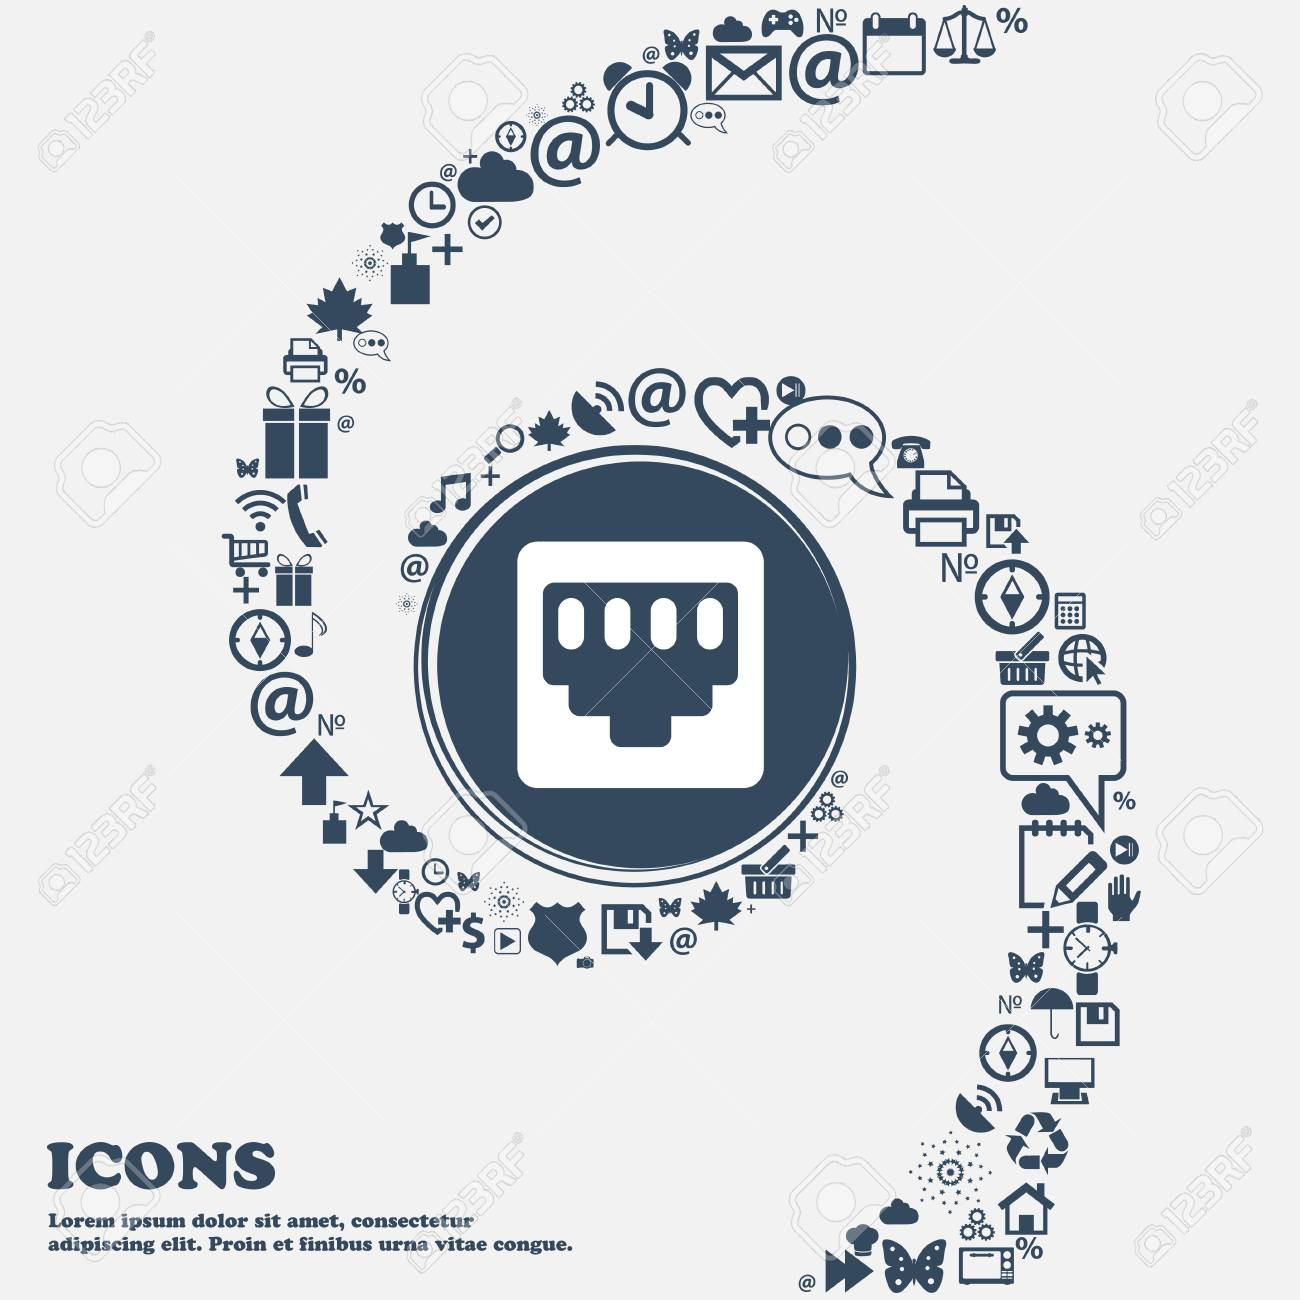 Cable Rj45 Patch Cord Icon Sign In The Center Around The Many